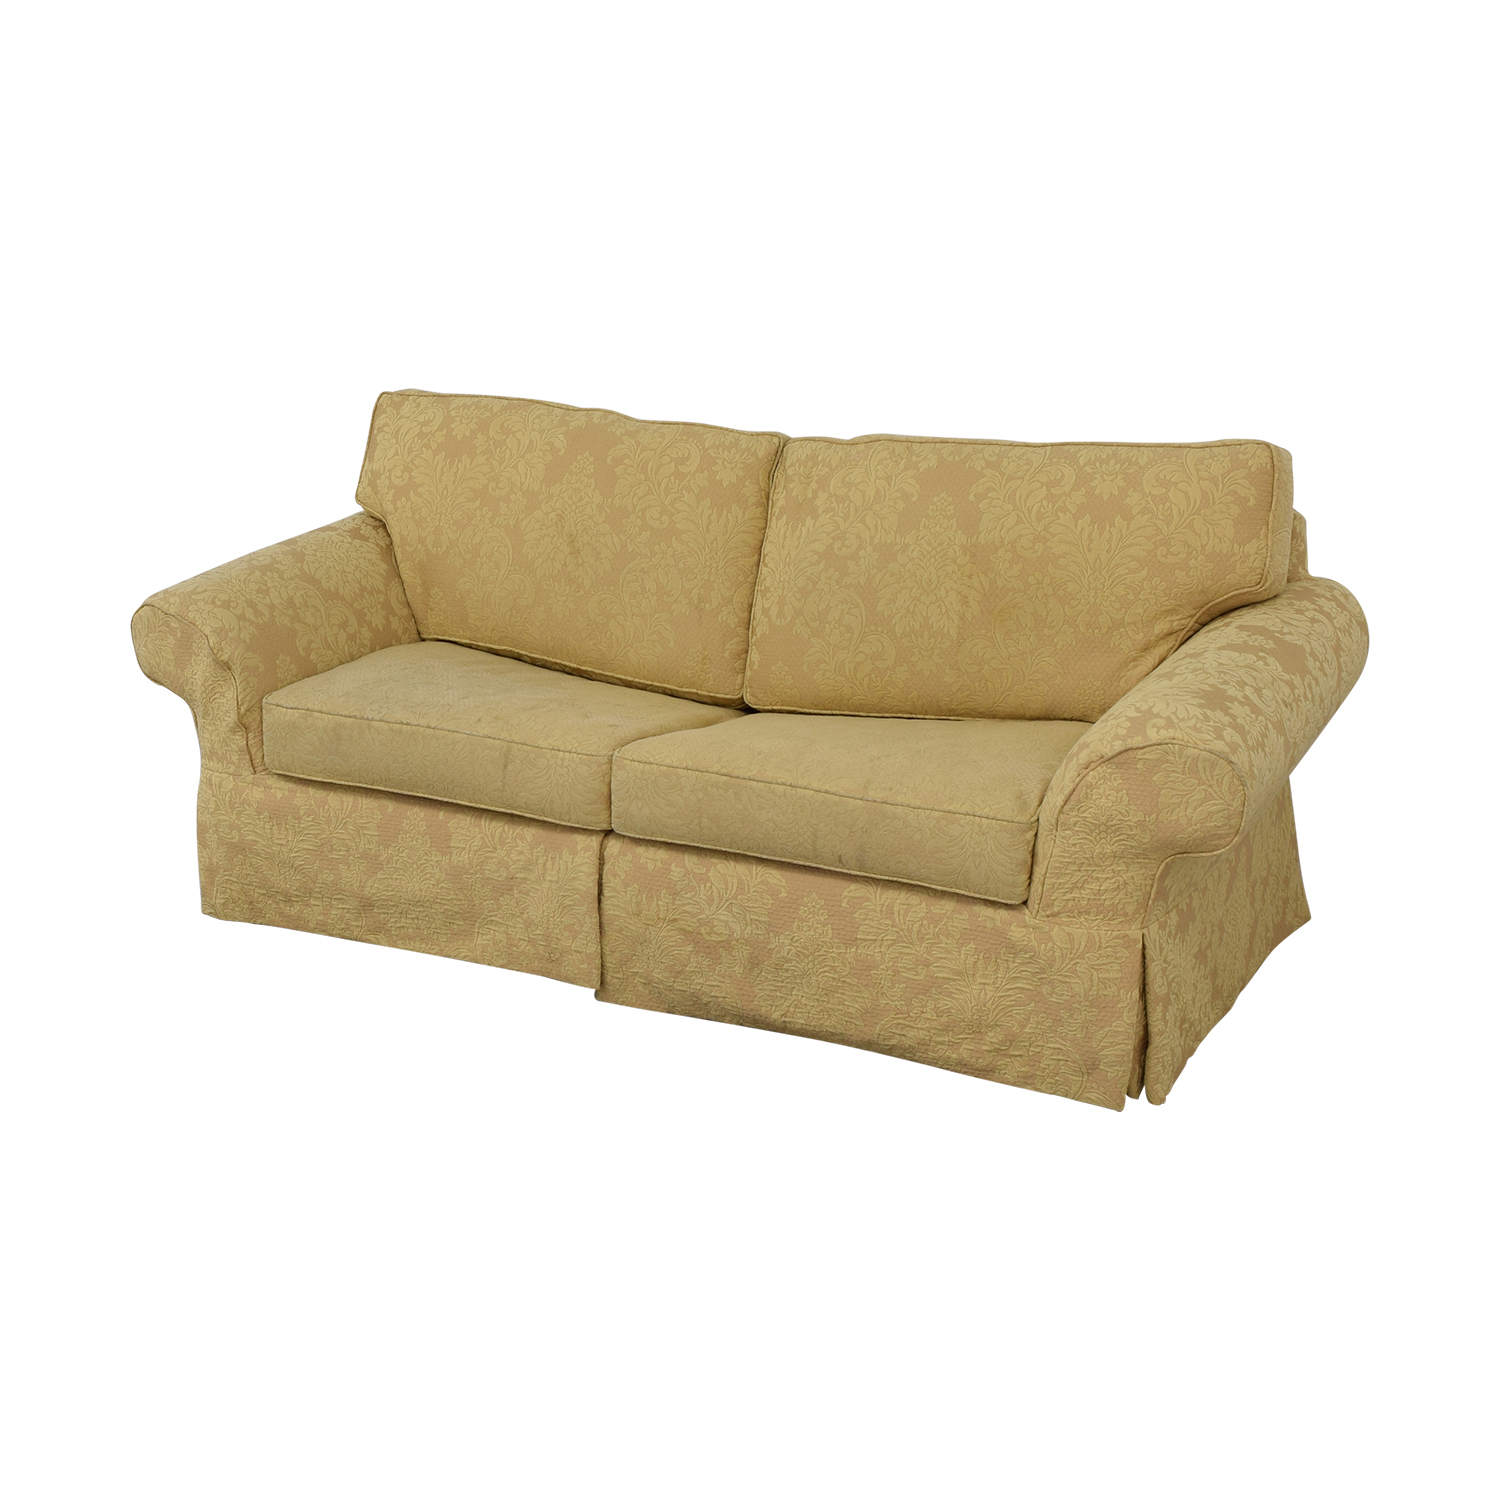 Astonishing 65 Off Domain Home Domain Home Portofino Sofa Sofas Caraccident5 Cool Chair Designs And Ideas Caraccident5Info